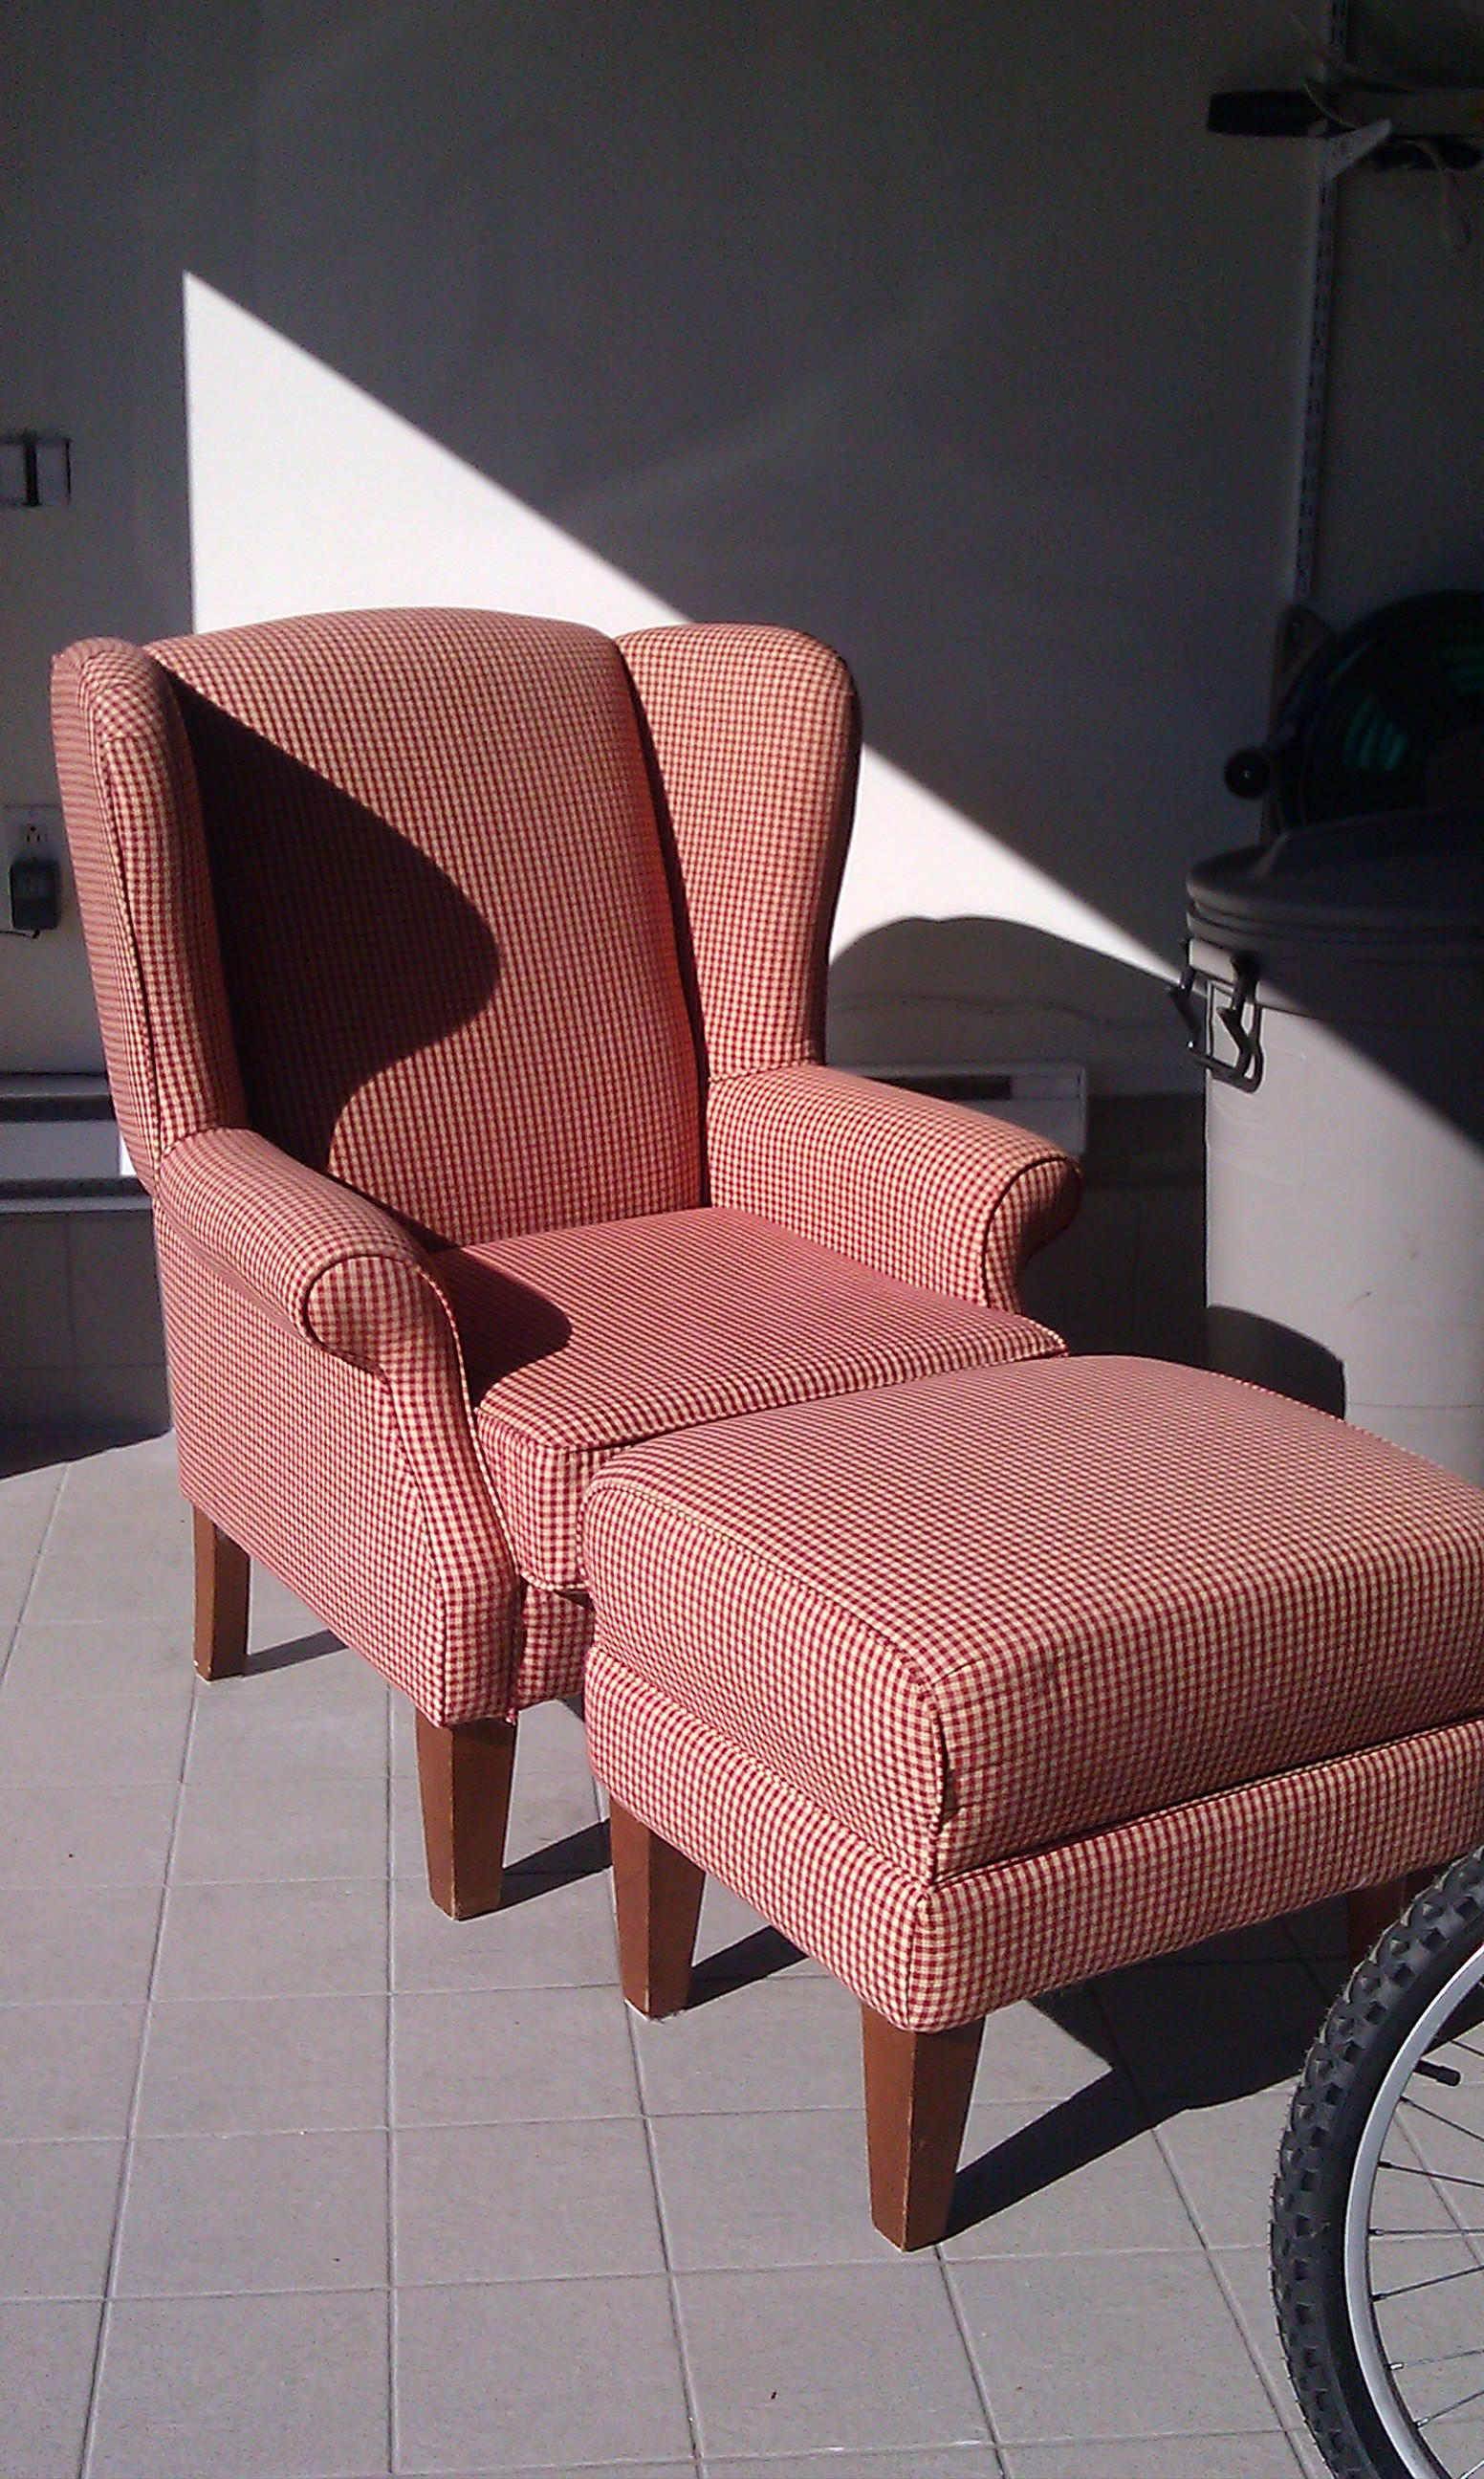 Wingback Chair - Before the DIY